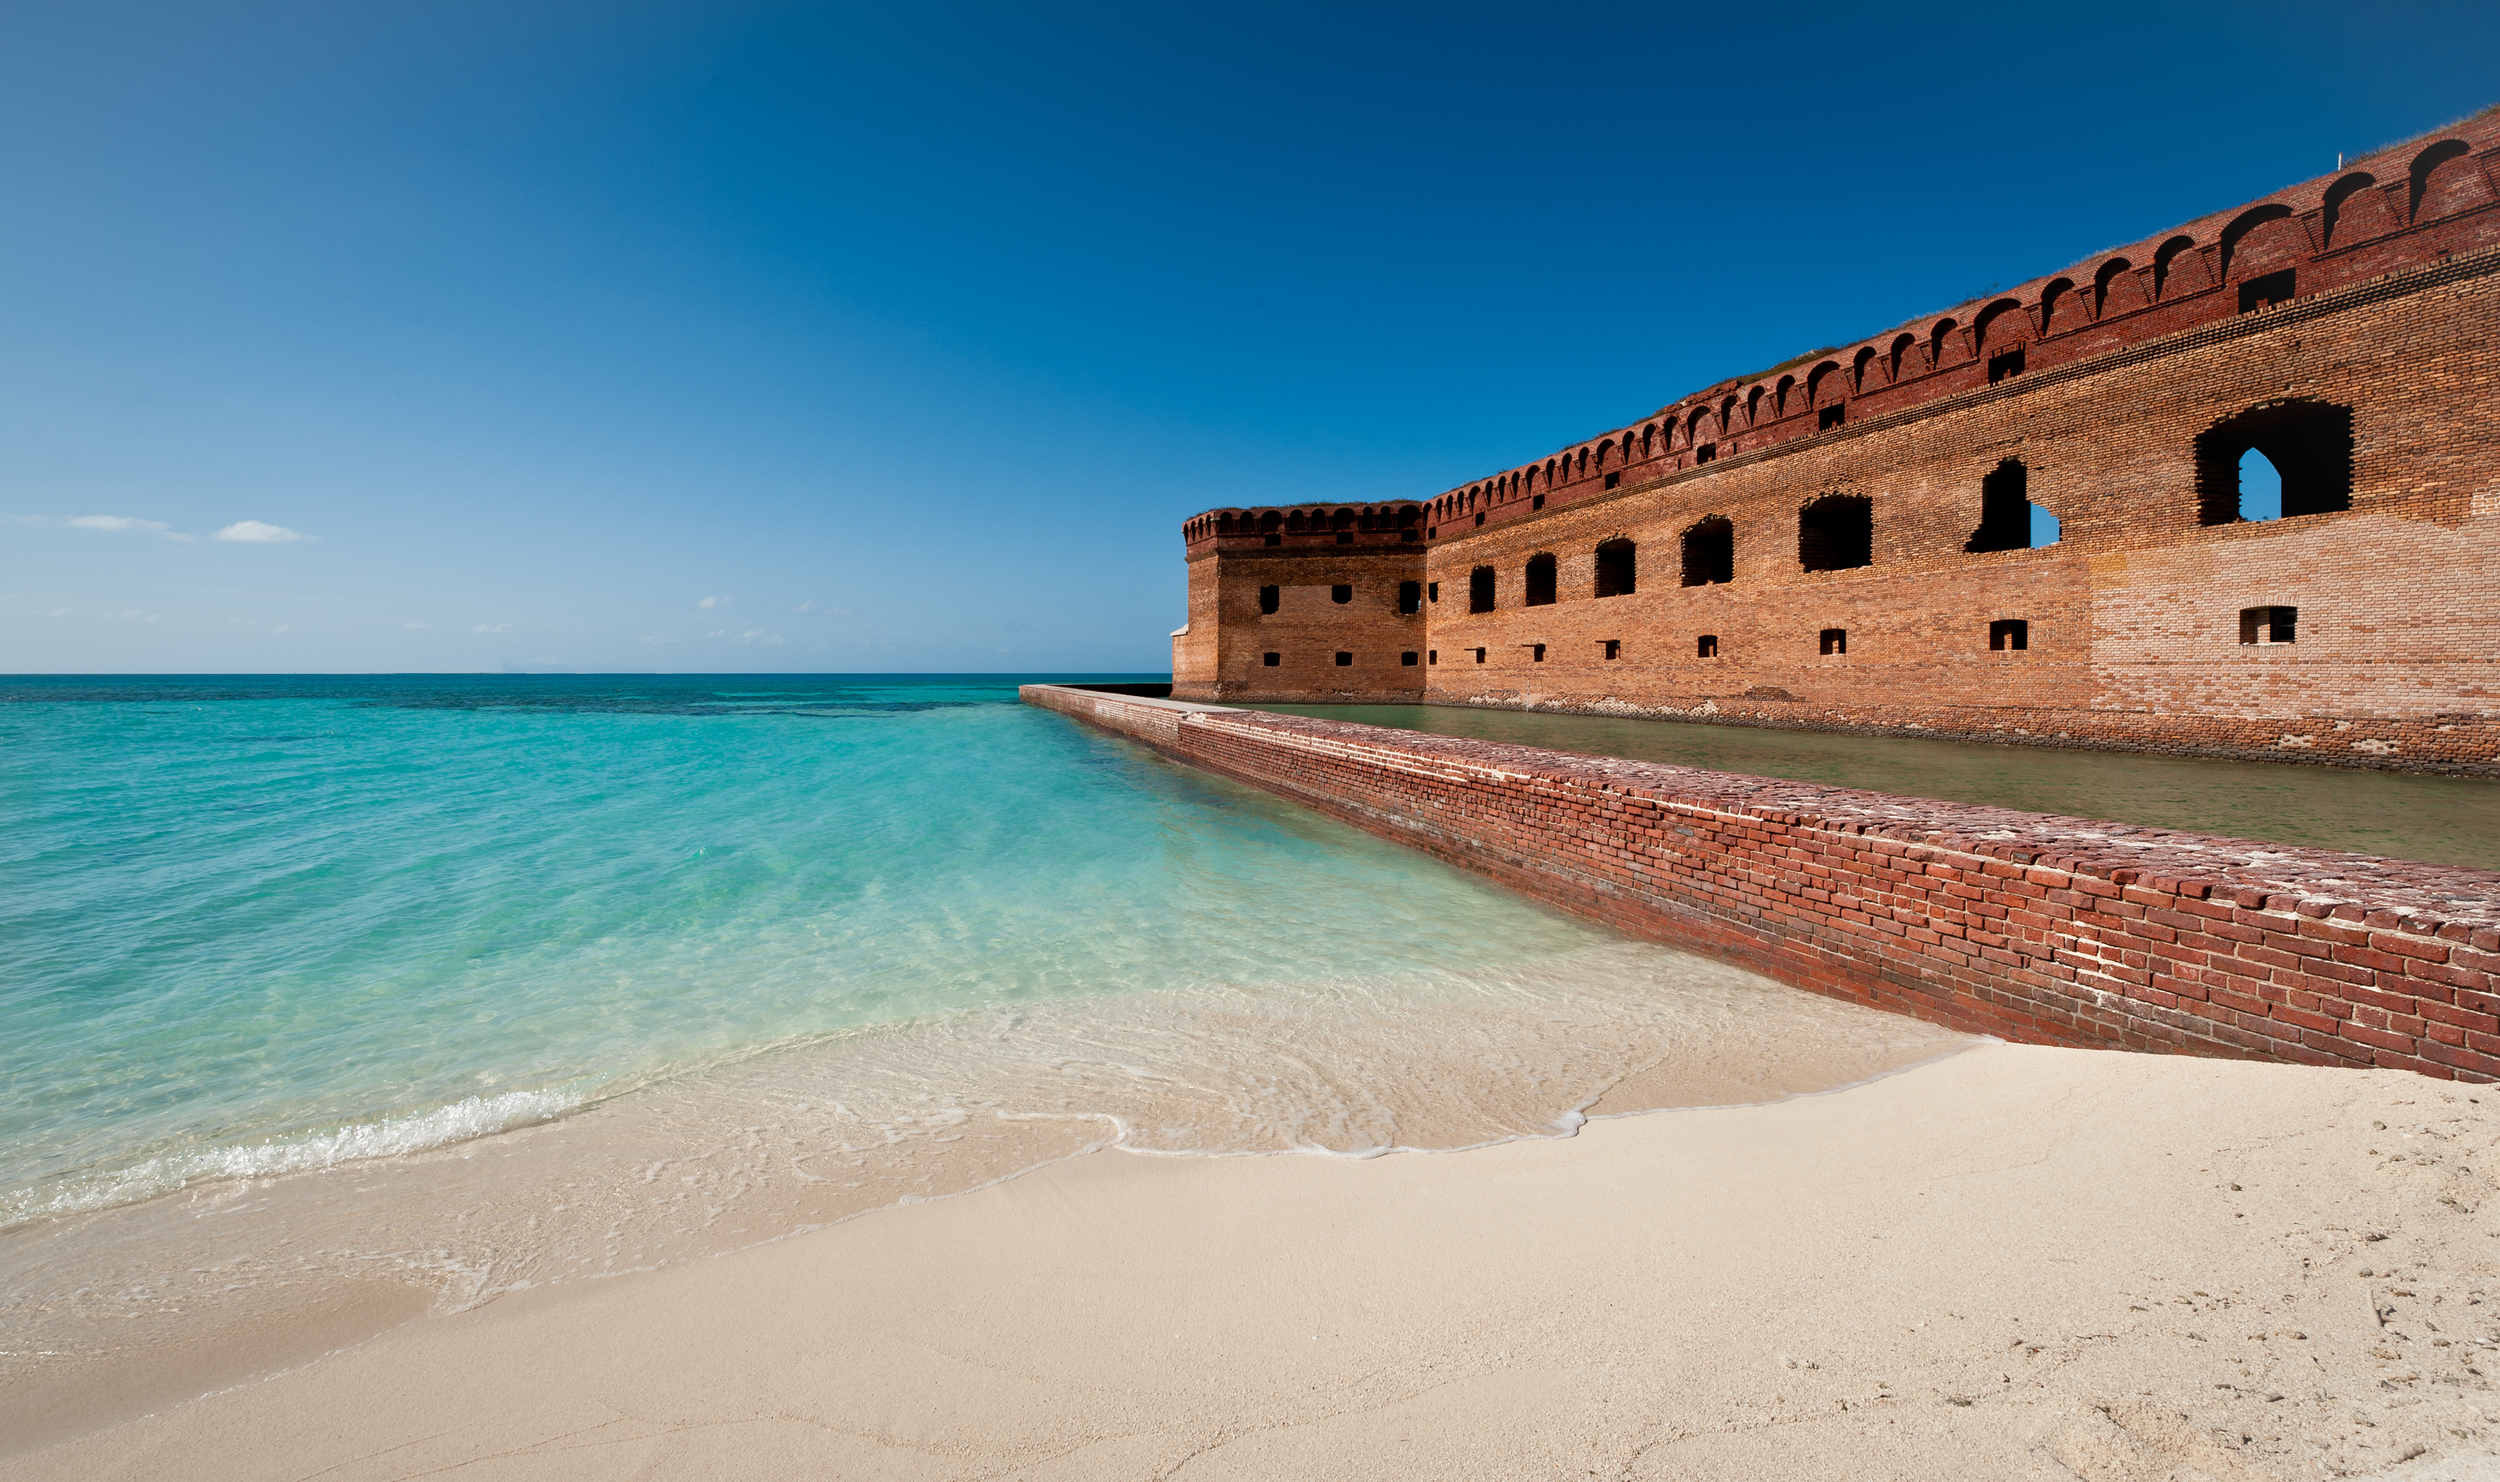 fort jefferson of dry tortugas national park – (PHOTO: NAGEL PHOTOGRAPHY/SHUTTERSTOCK)